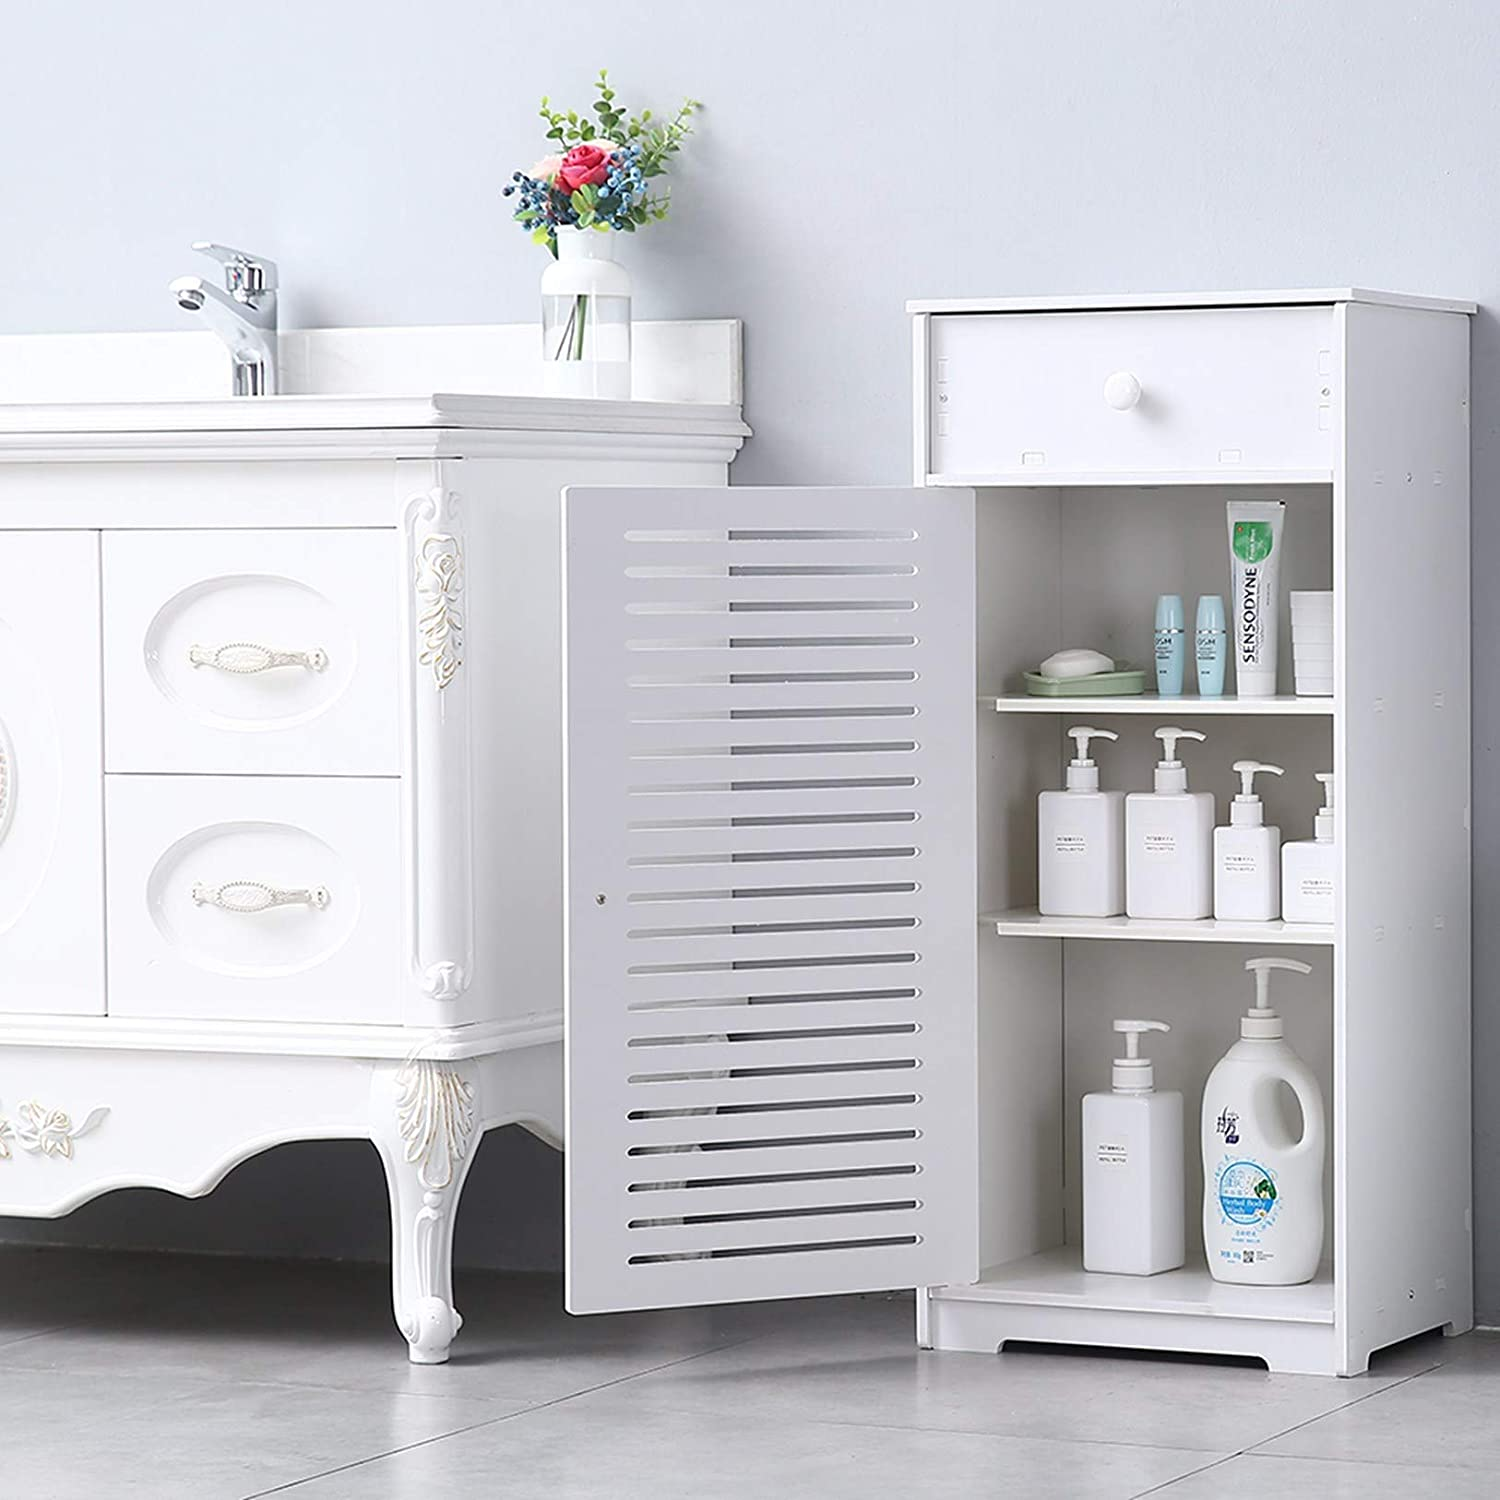 - Bathroom Furniture Organizer Shelf for Paper Shampoo Save Space for Small Bathroom BB 16 x 11.8 x 35.5 BRLUCKY Home HomeLiving Single Door with Drawer Three Compartments 35.5 High Storage Cabinet